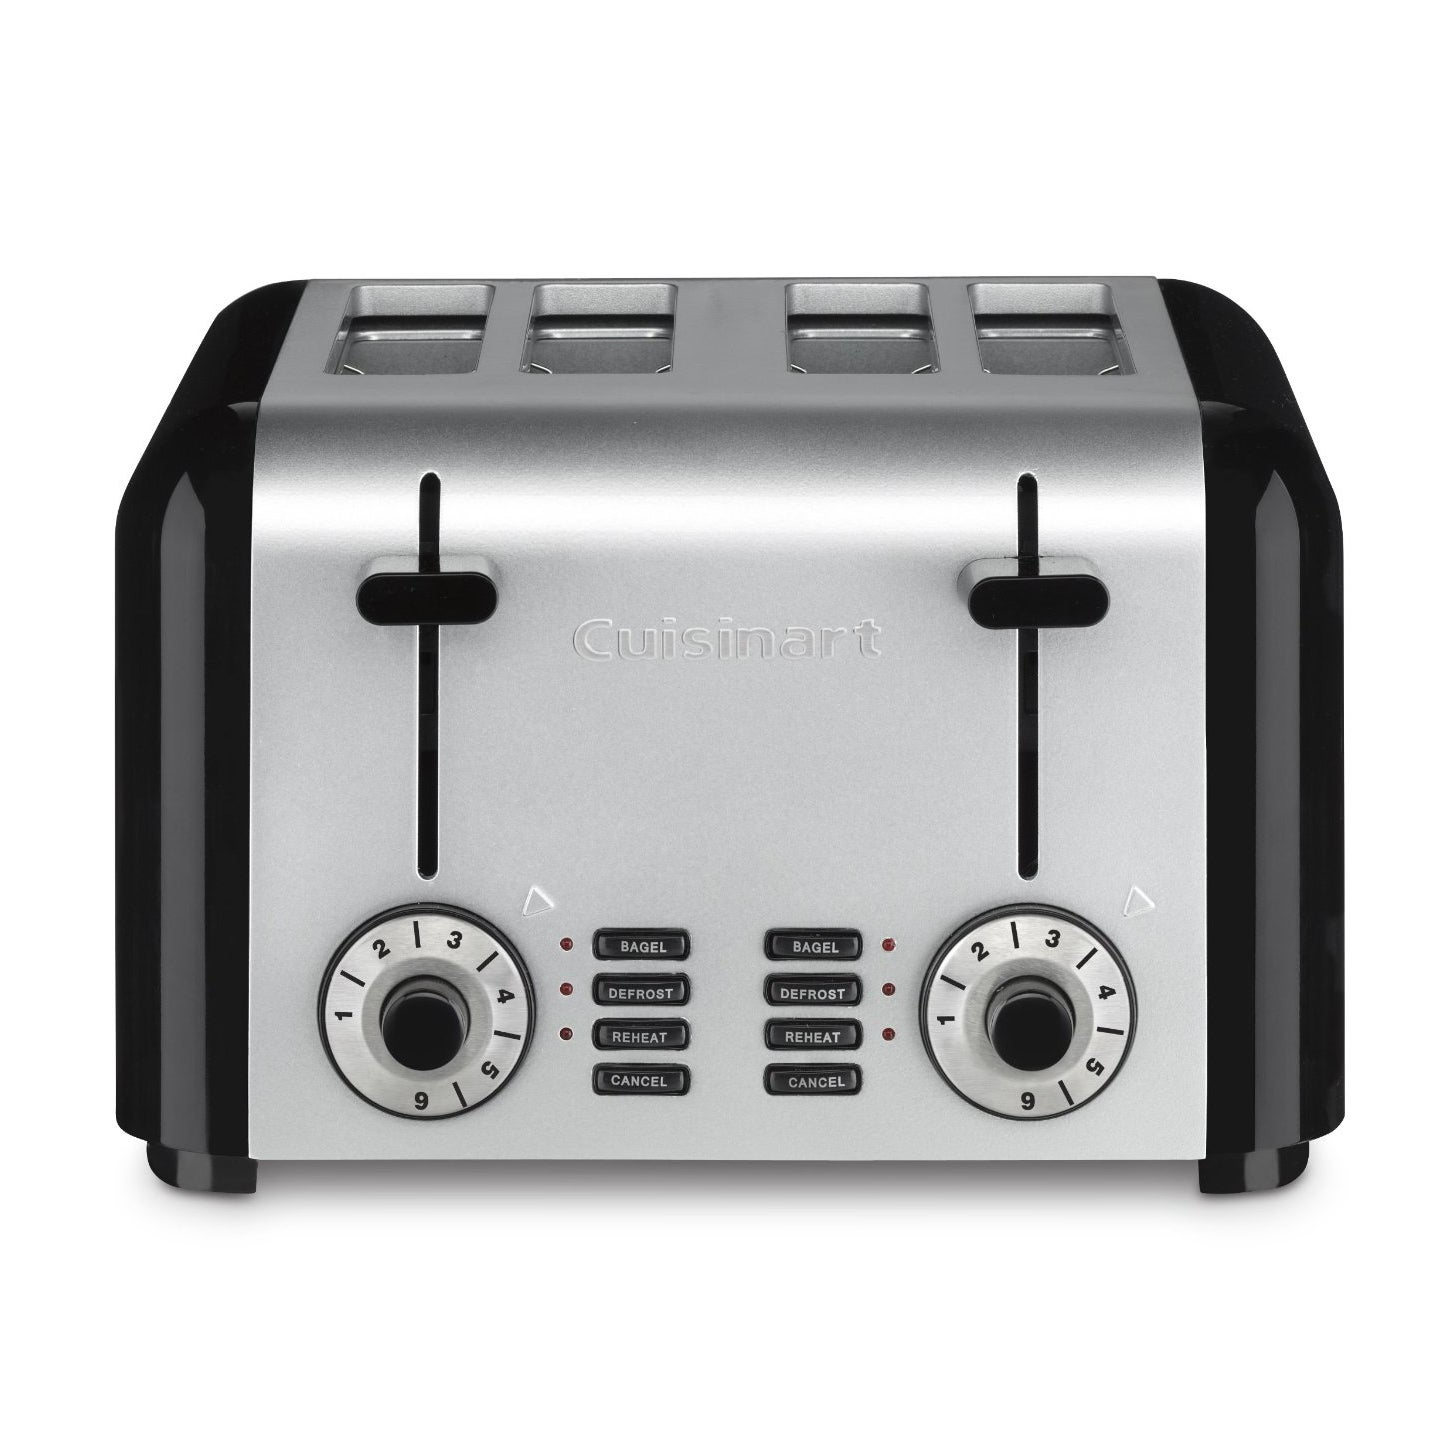 Cuisinart CPT-340 Brushed Stainless Steel 4-slice Toaster...